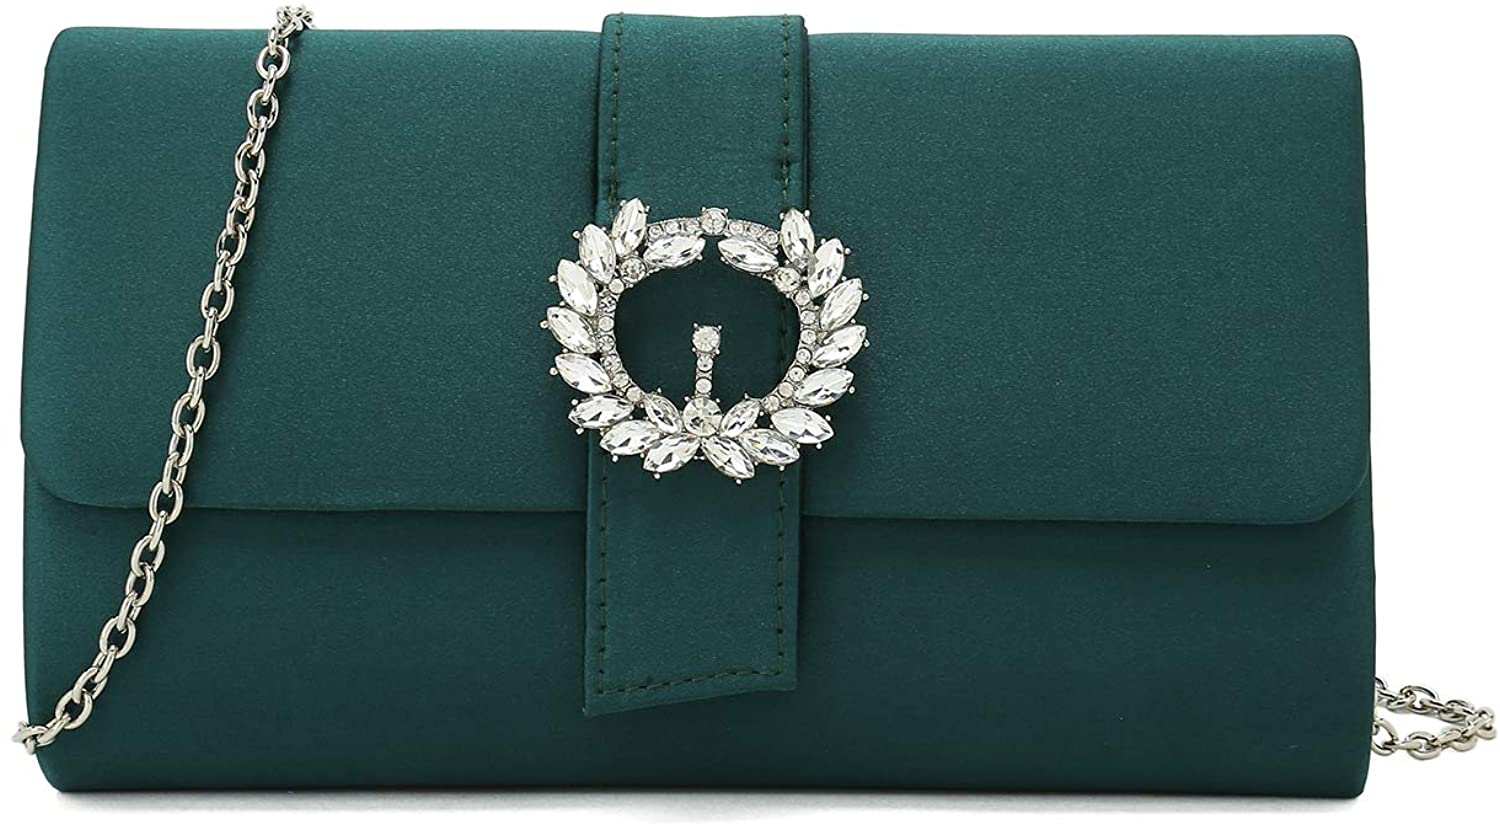 Charming Tailor Evening Bag Diamantes Embellished Satin Clutch Purse for Woman Classy Party Handbag with Beaded Brooch